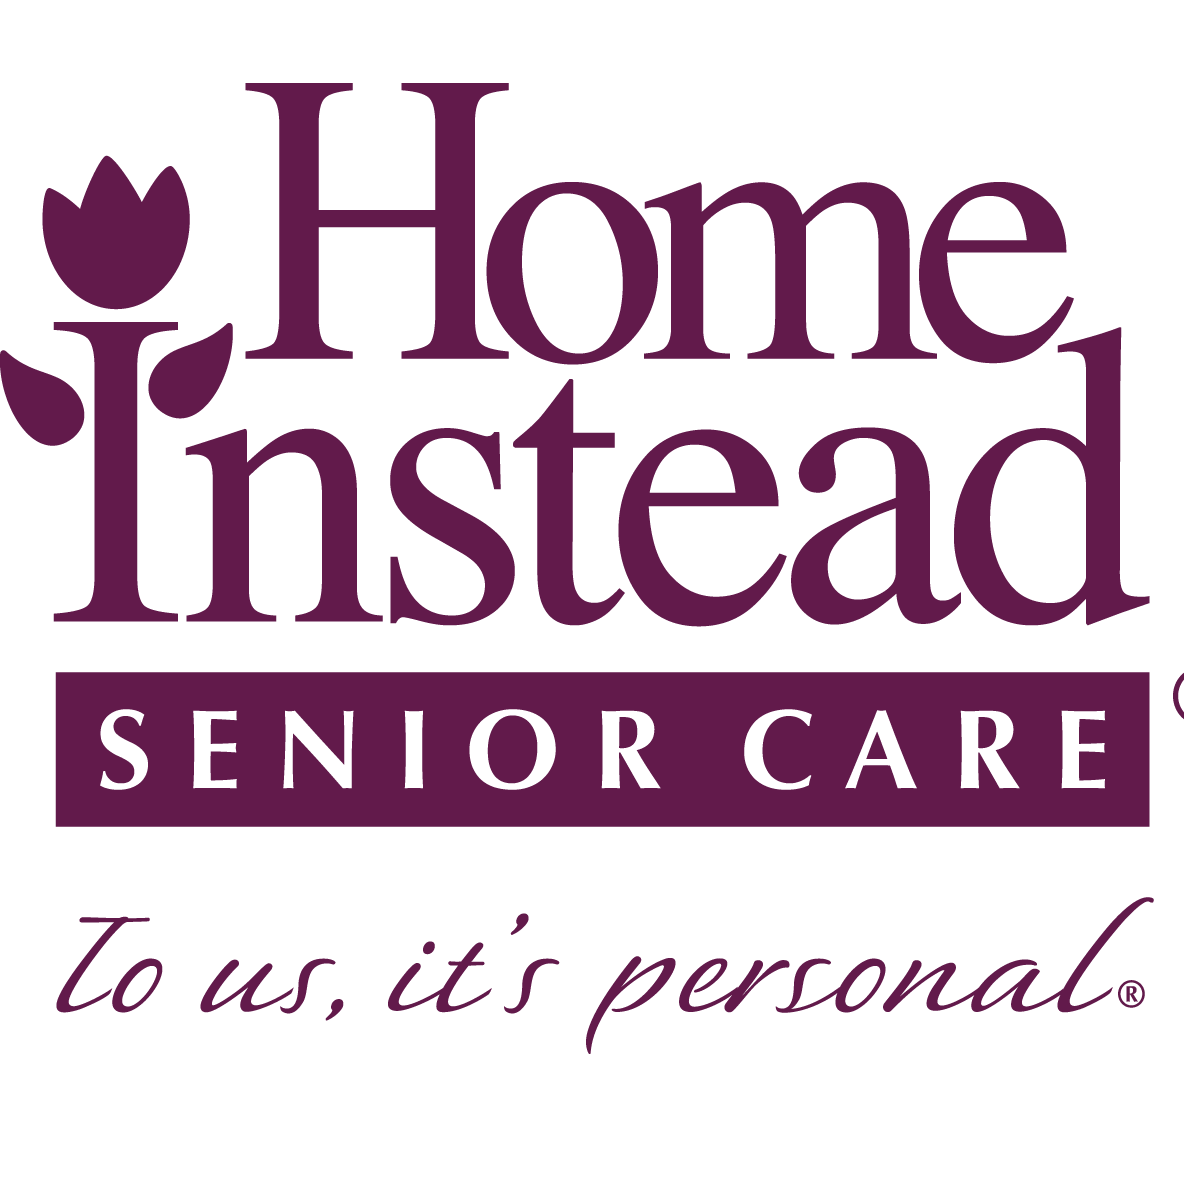 Home Instead Senior Care (serving Houston - Bellaire, Missouri City, Sugar Land)